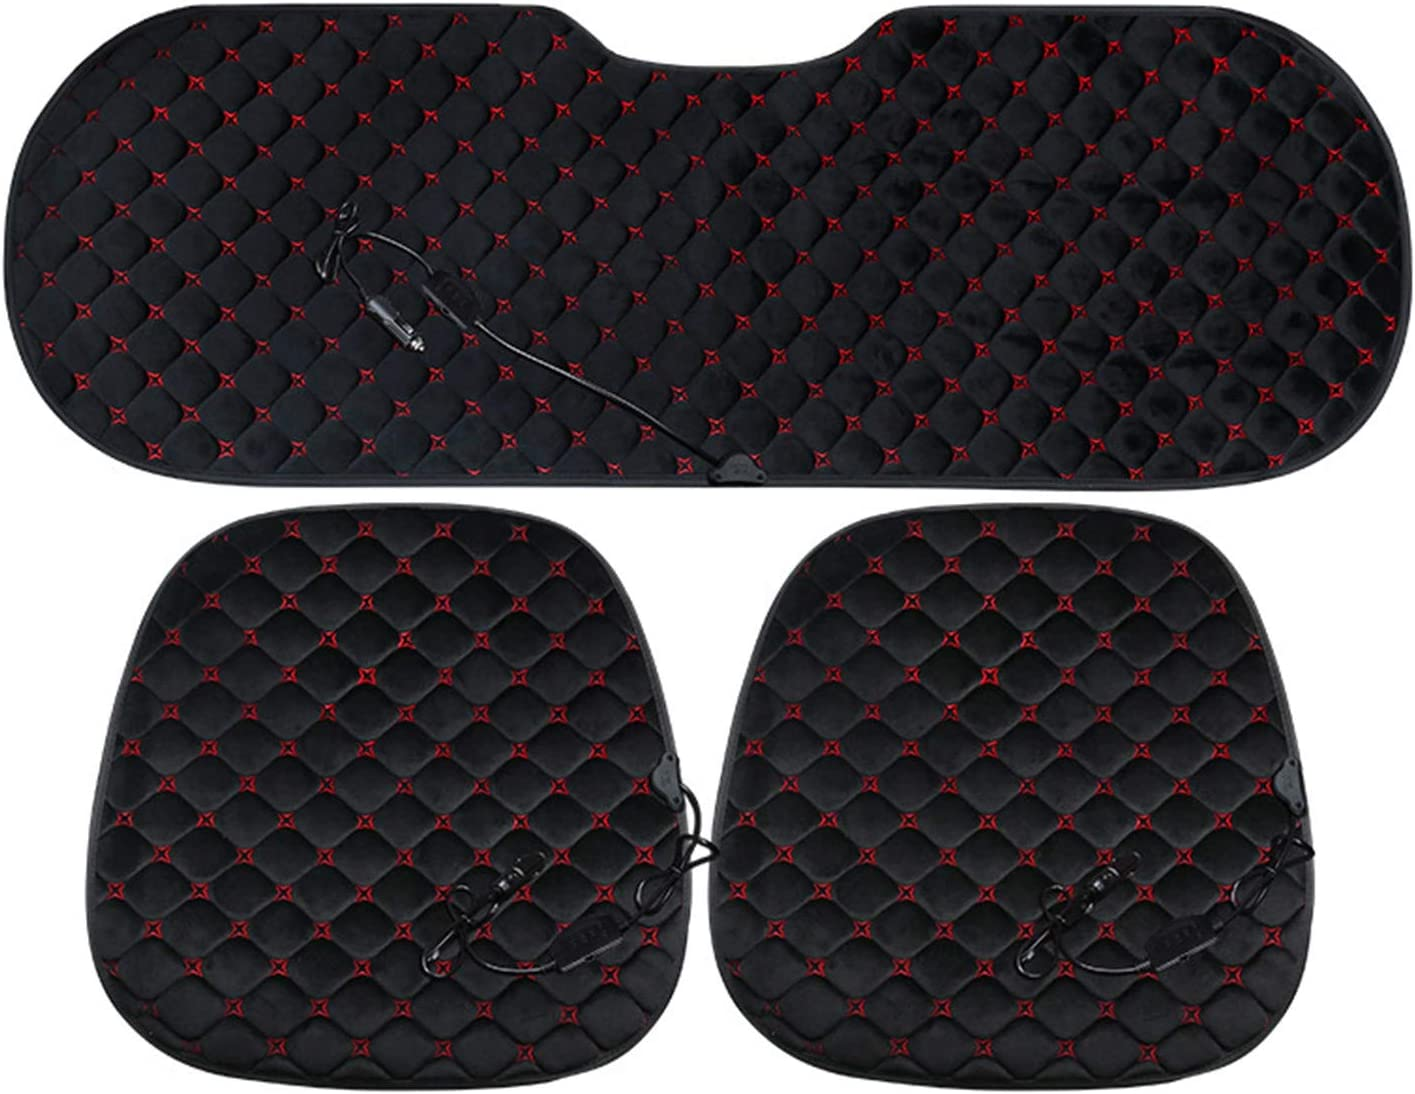 Car Heating Cushion 12V Electric Heating Cushion Winter Warm Small Square Pad Without Backrest Black